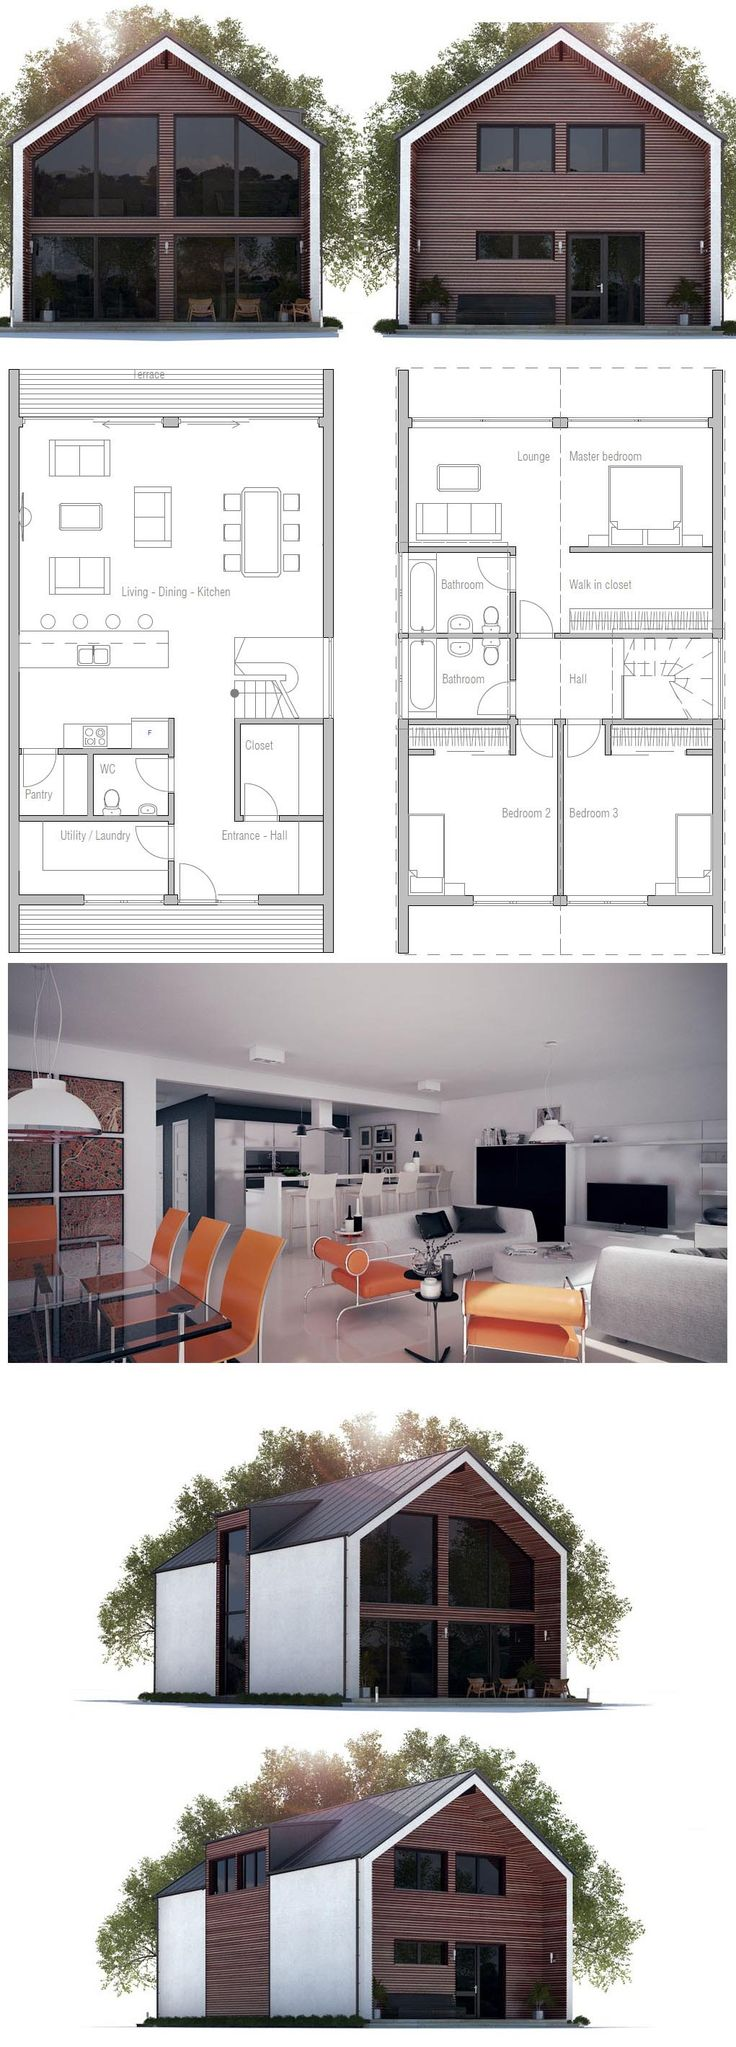 Plan de Maison Modern House Floor